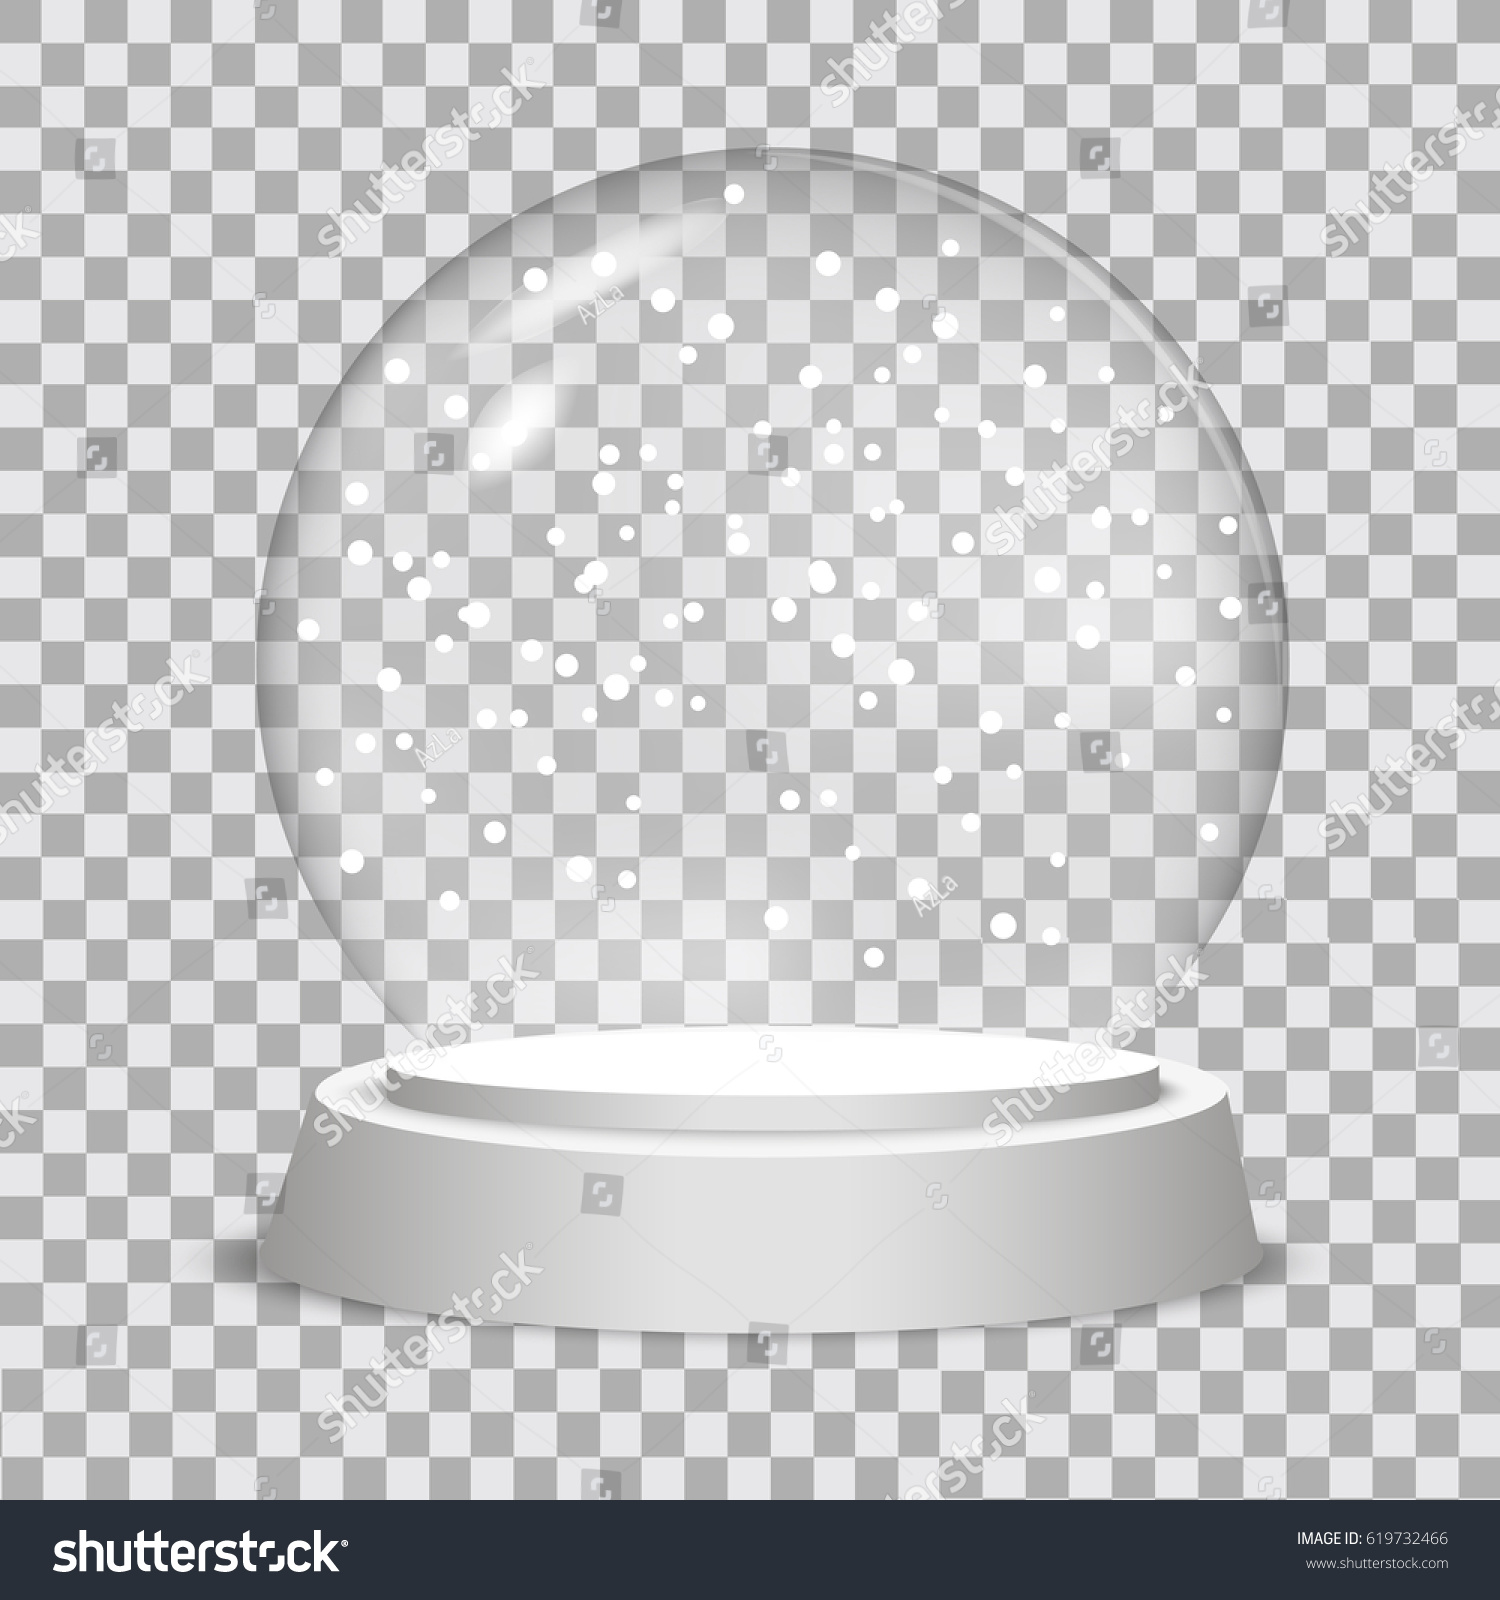 Christmas Snow Globe On Transparent Background Stock Vector (Royalty ...